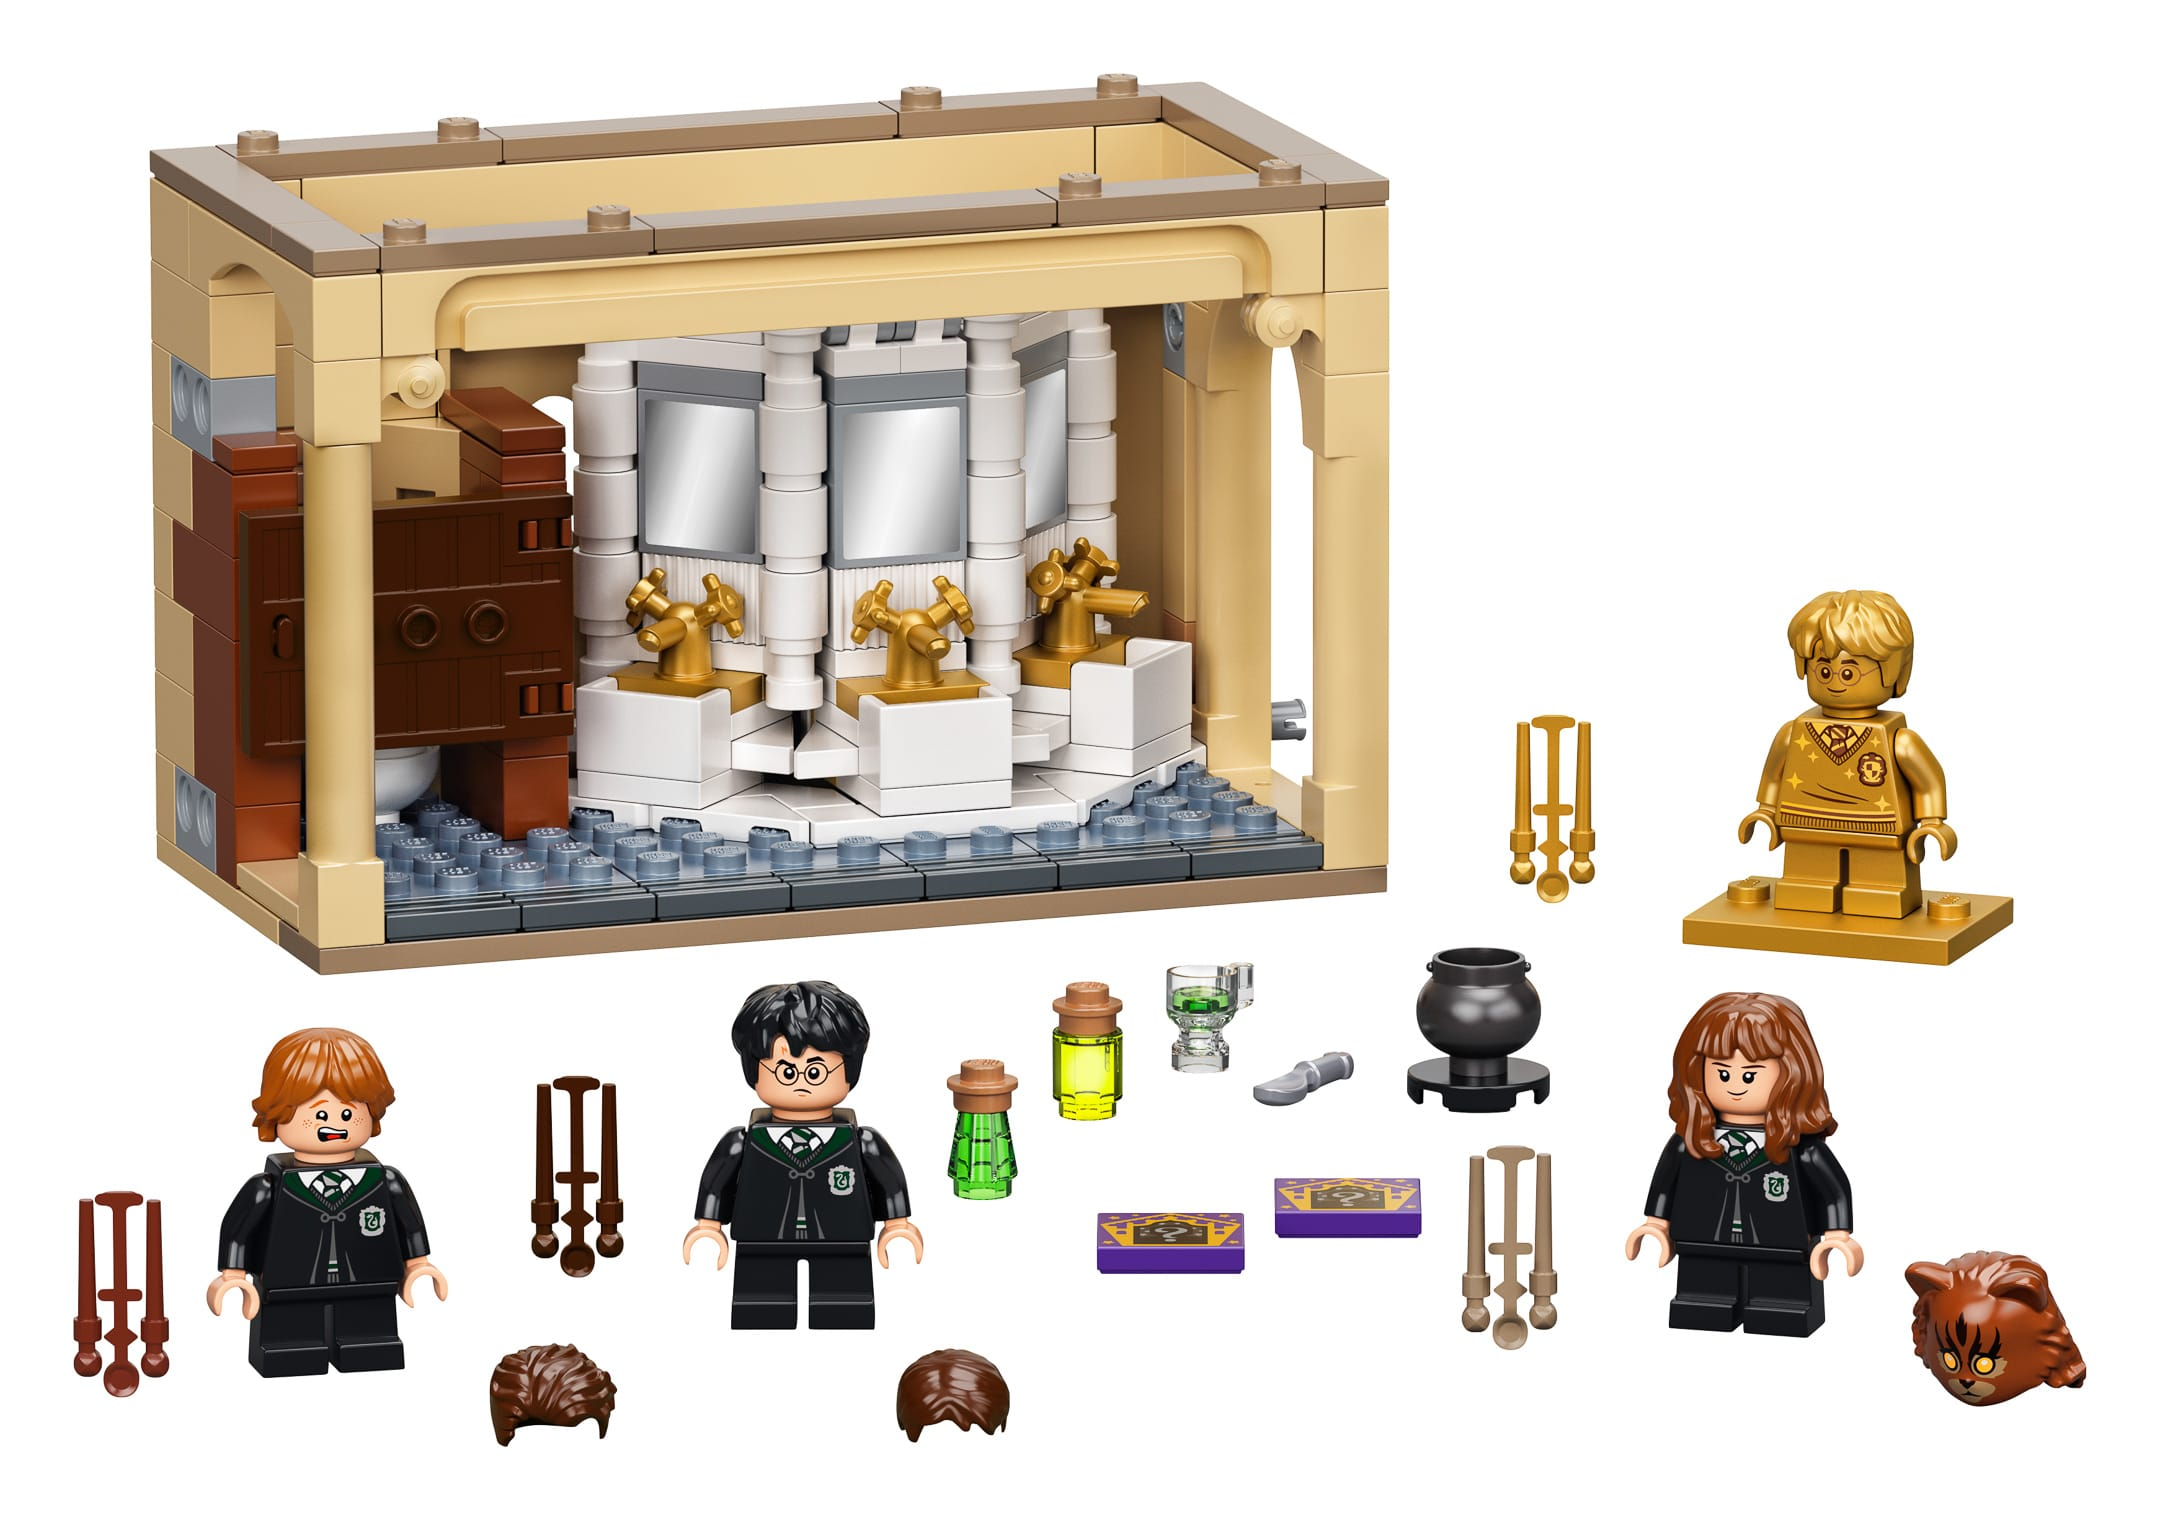 LEGO Harry Potter marks its 20th anniversary with 8 new sets 13